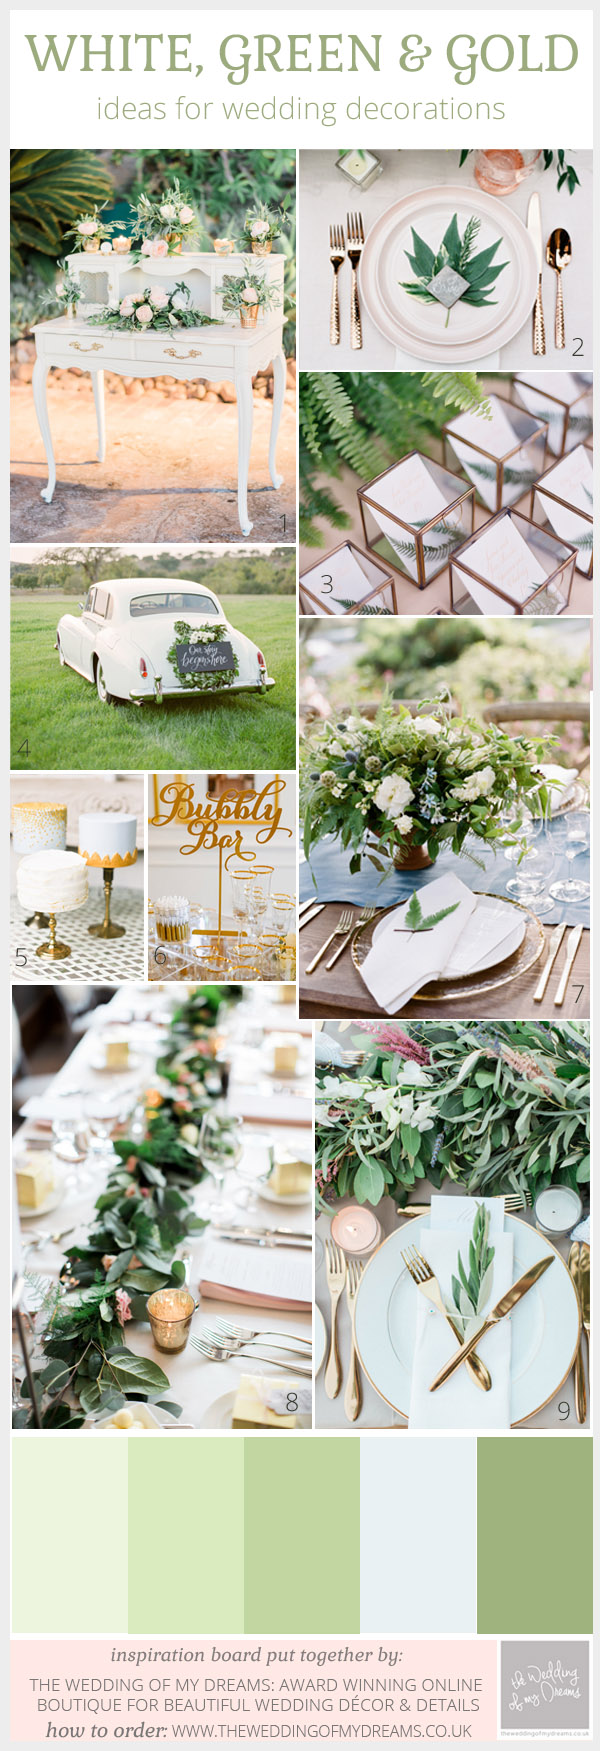 Green white and gold wedding ideas inspiration junglespirit Choice Image